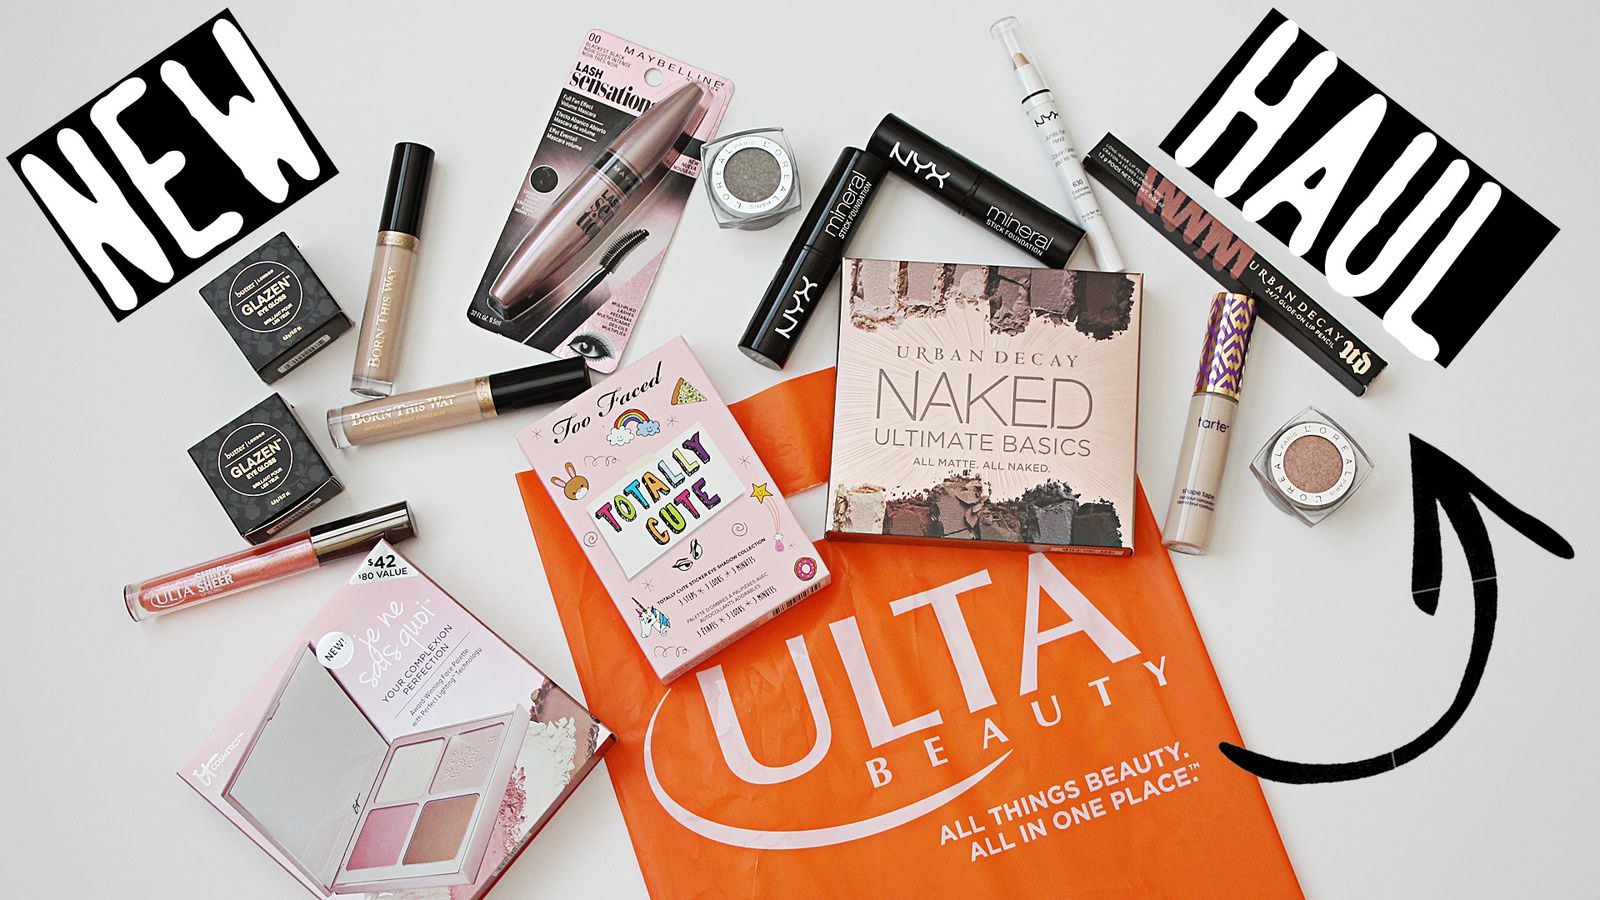 NEW at ULTA HAUL! Holiday Makeup & More